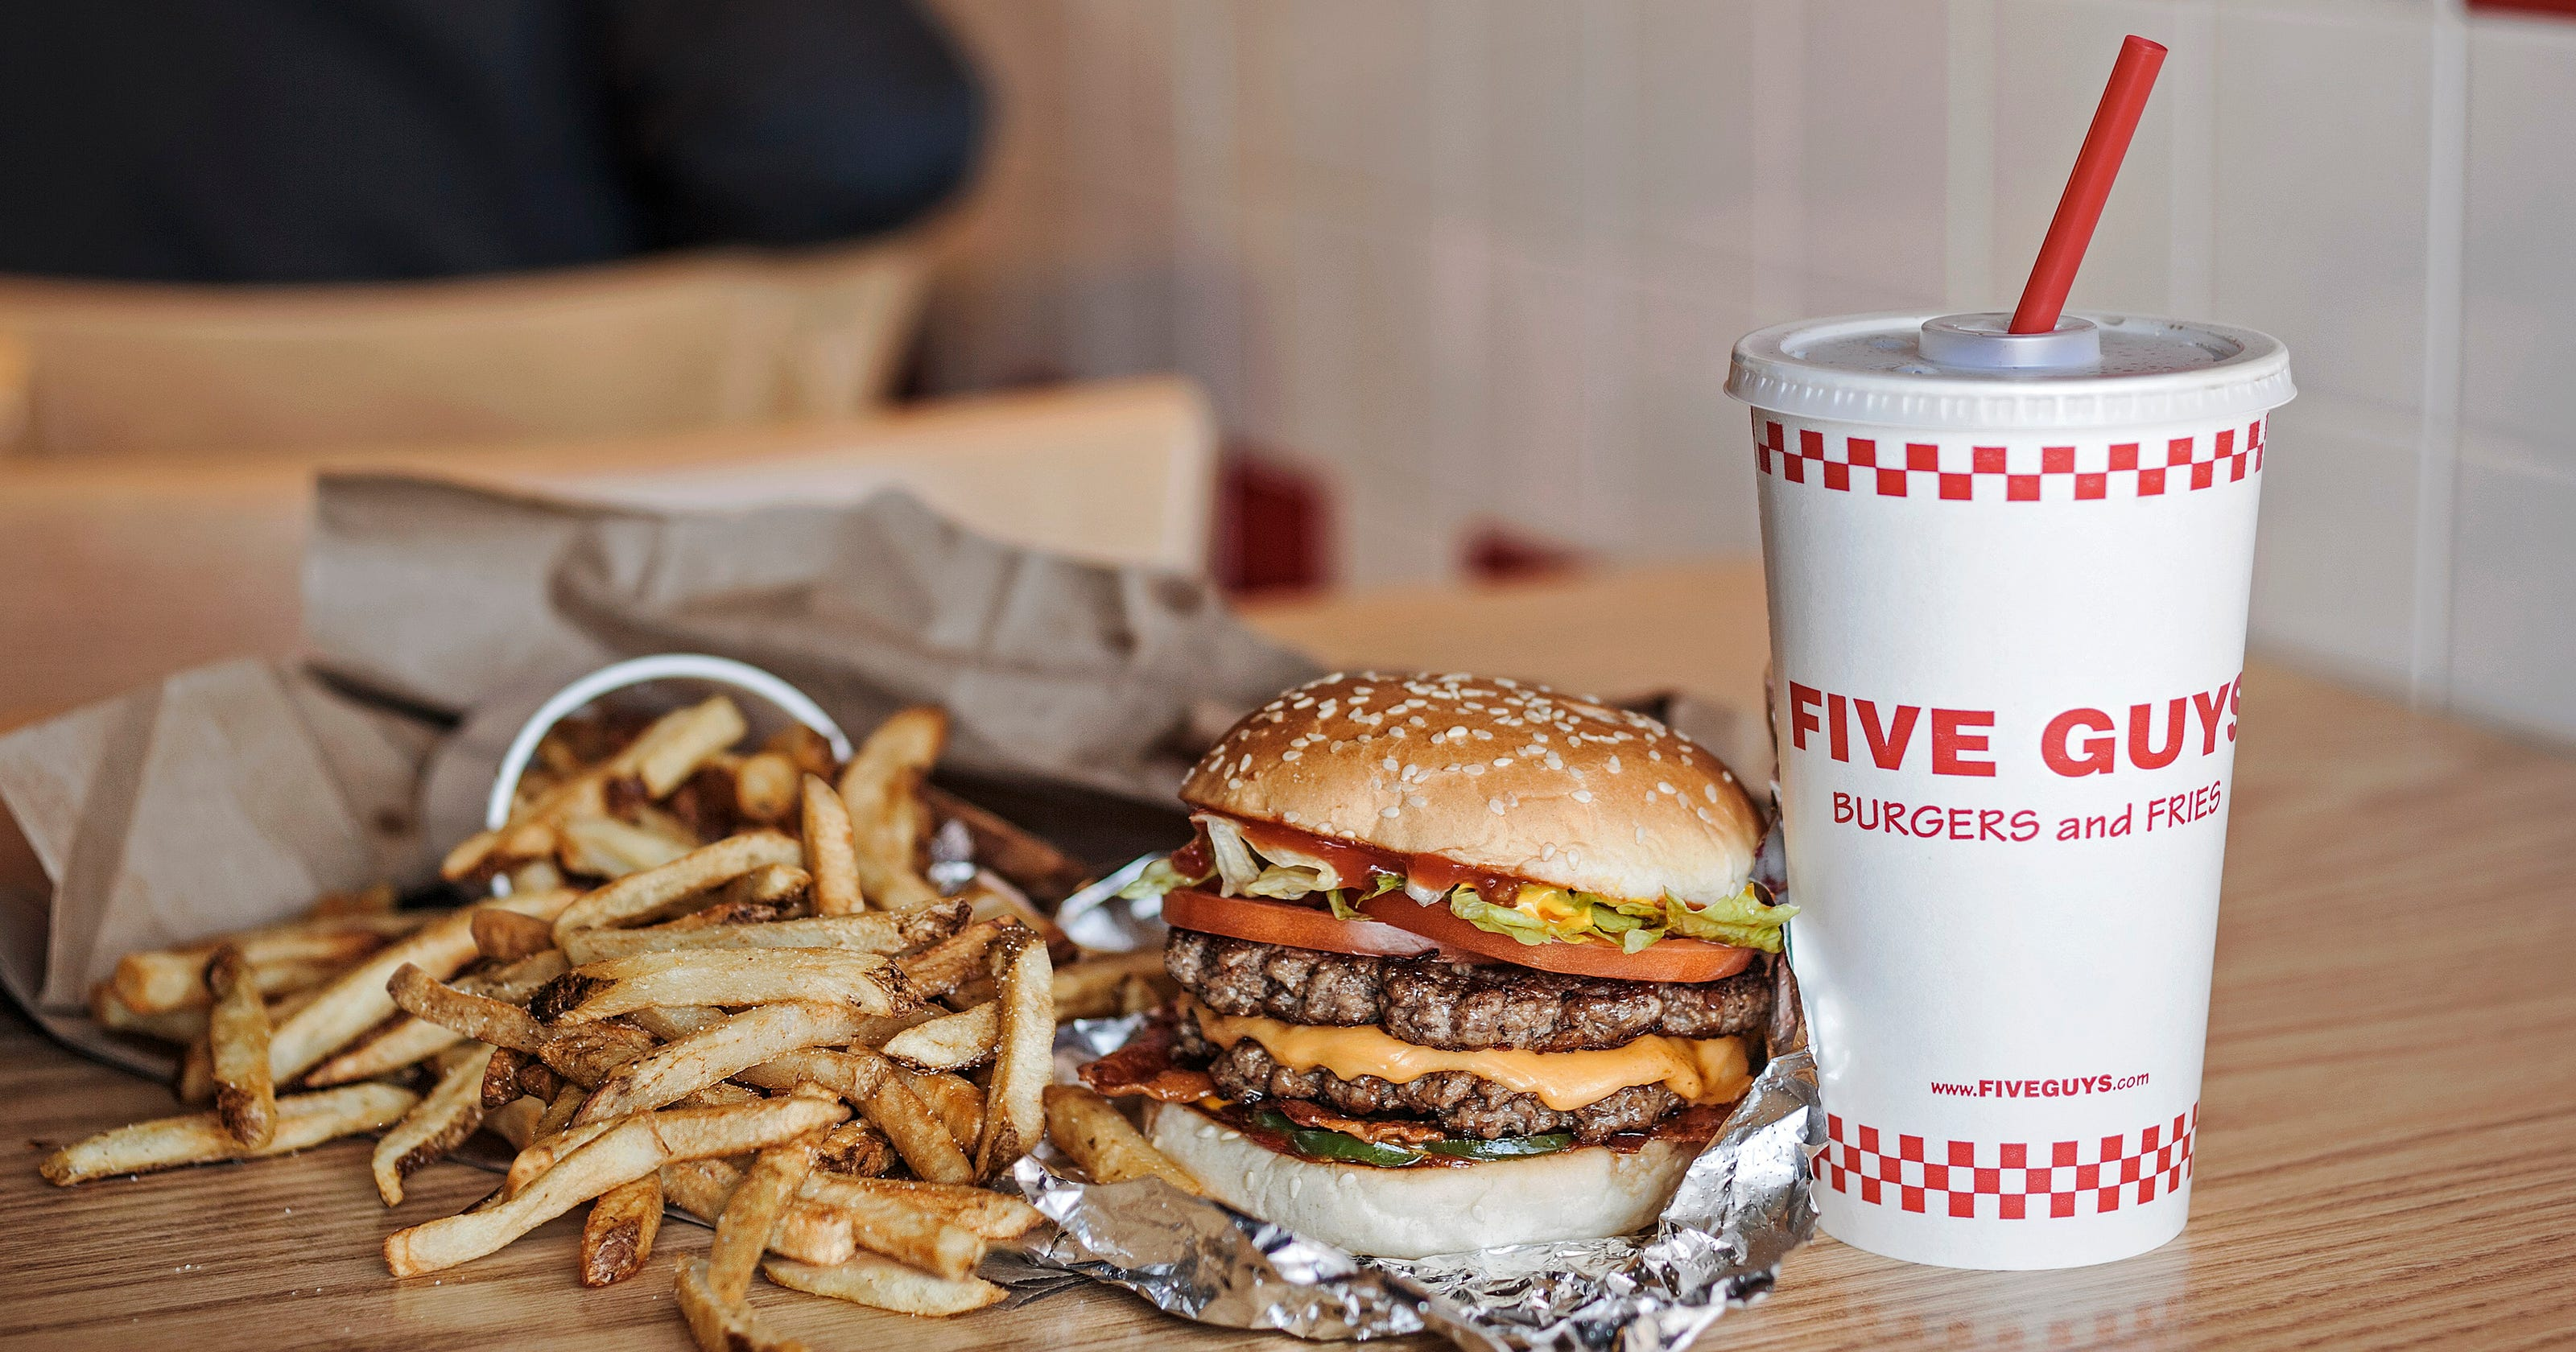 Five Guys is coming to West Des Moines